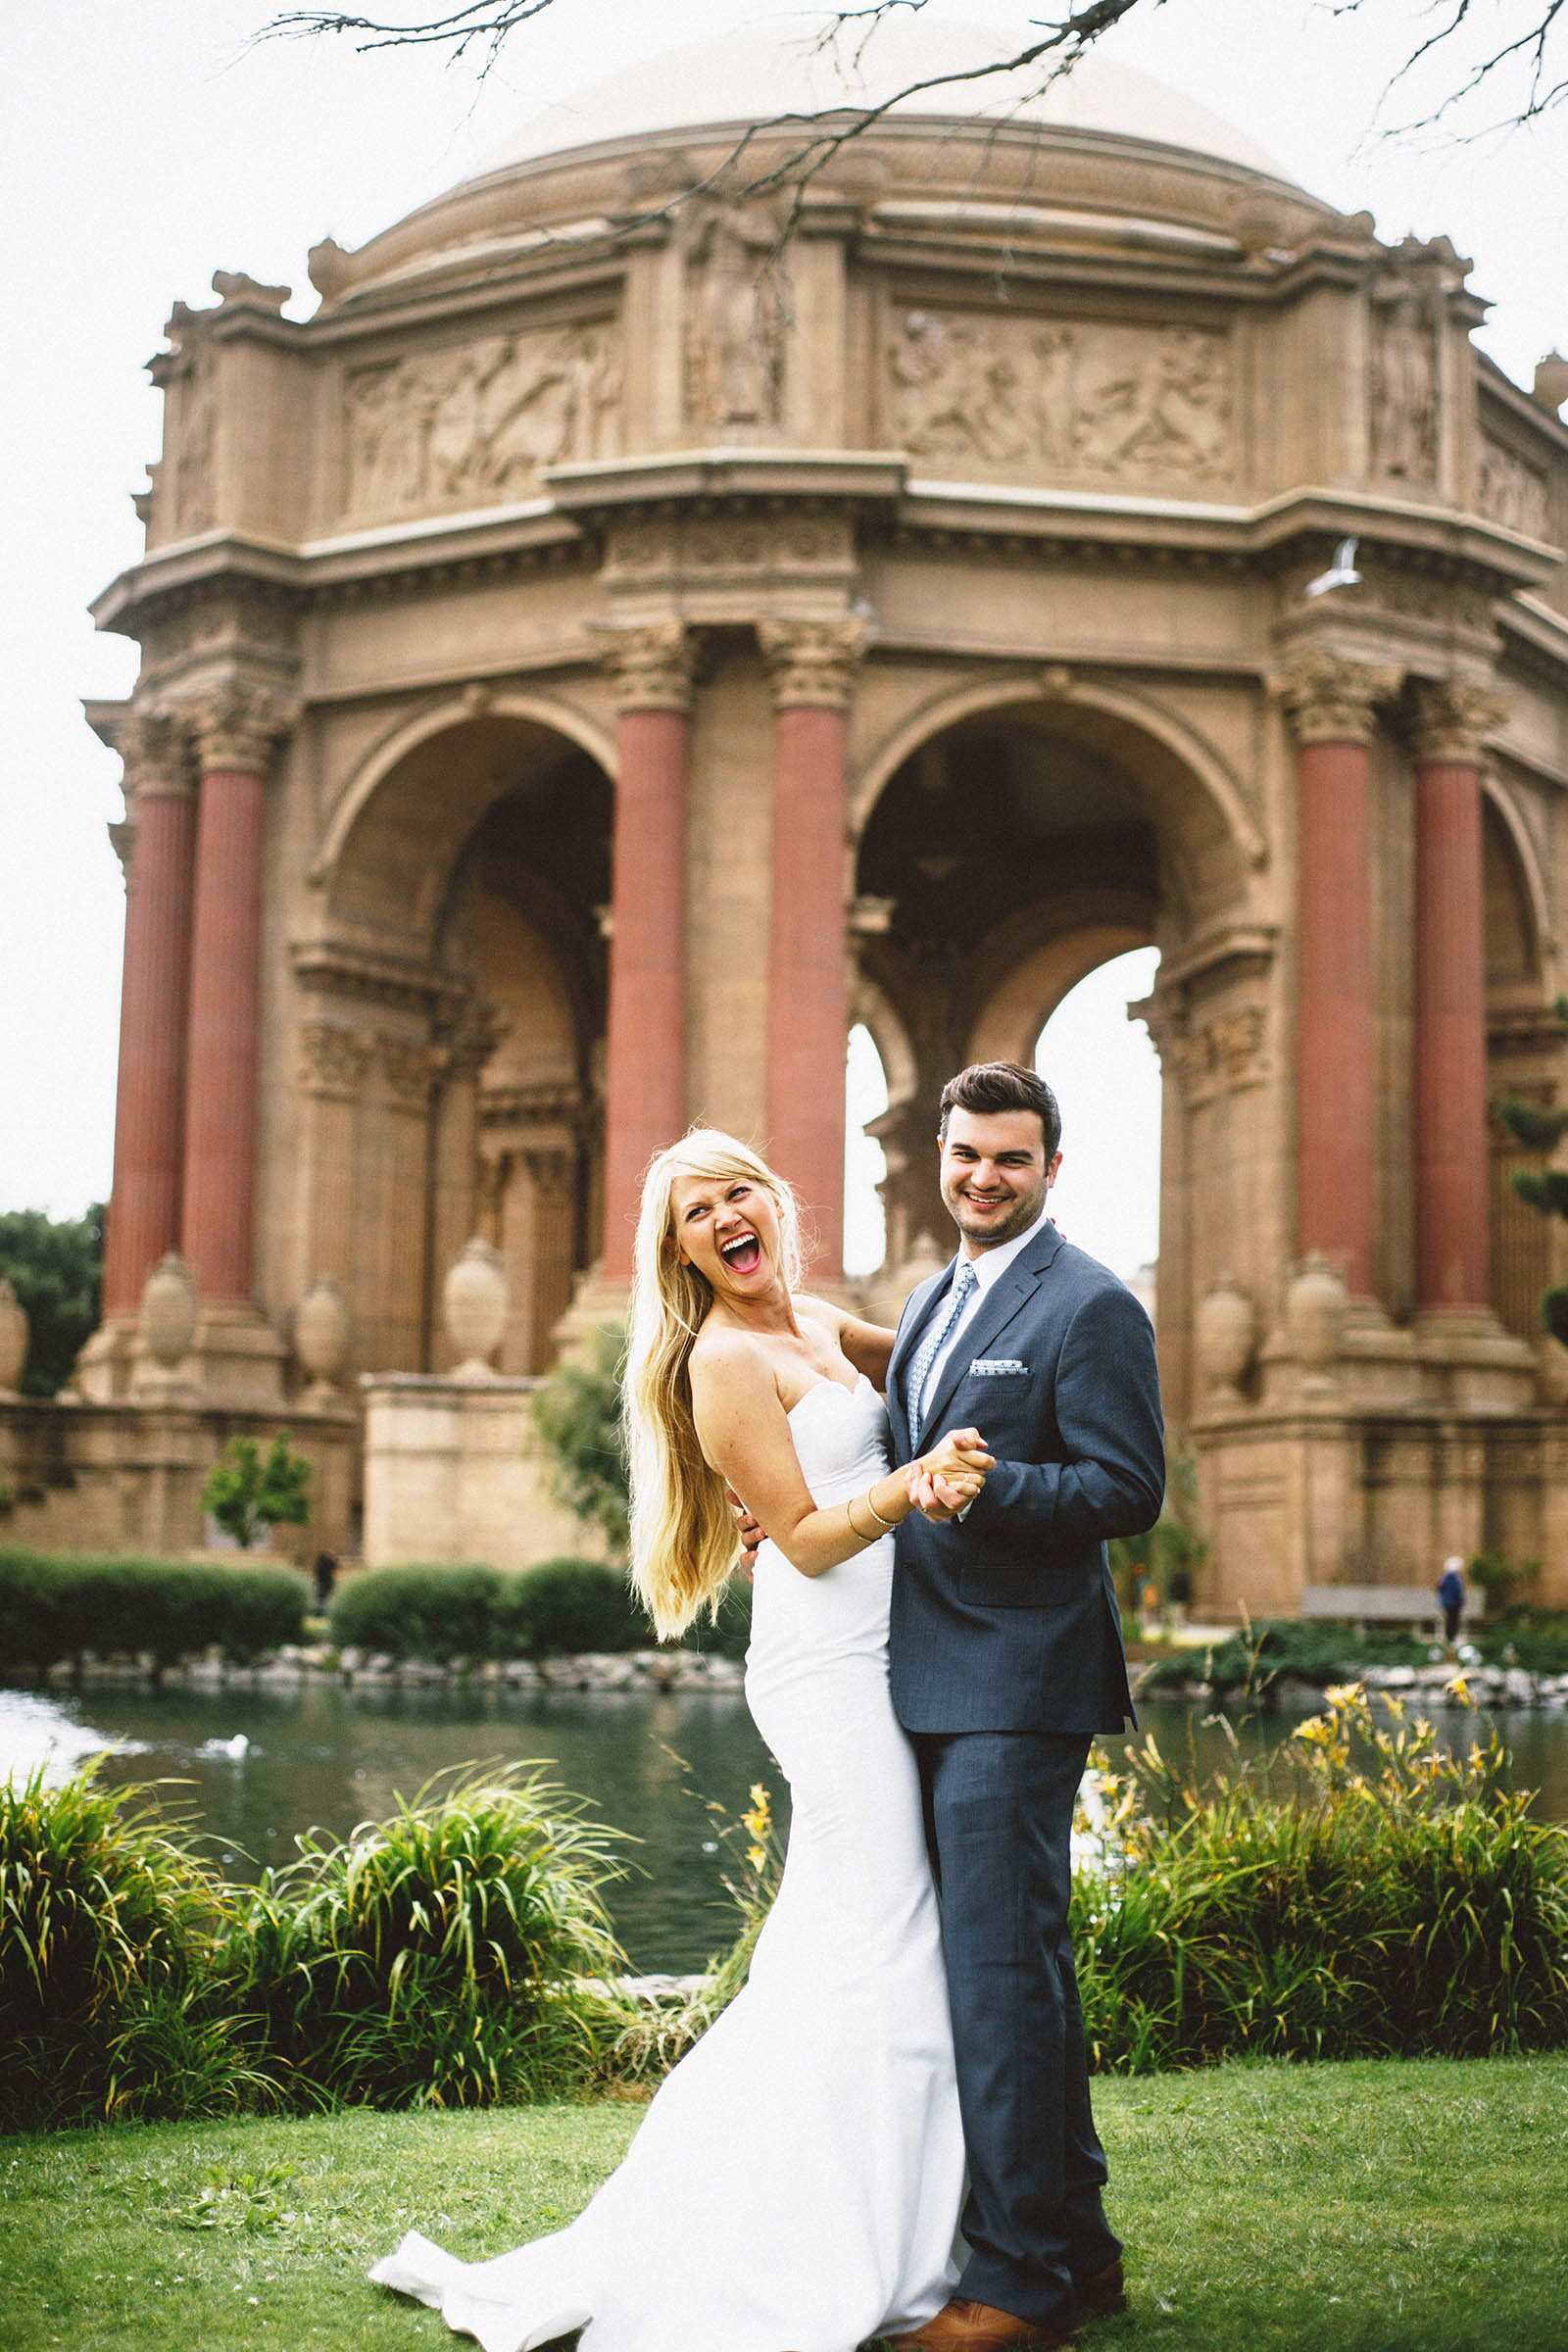 First dances at the Palace of Fine Arts | San Francisco City Hall Wedding